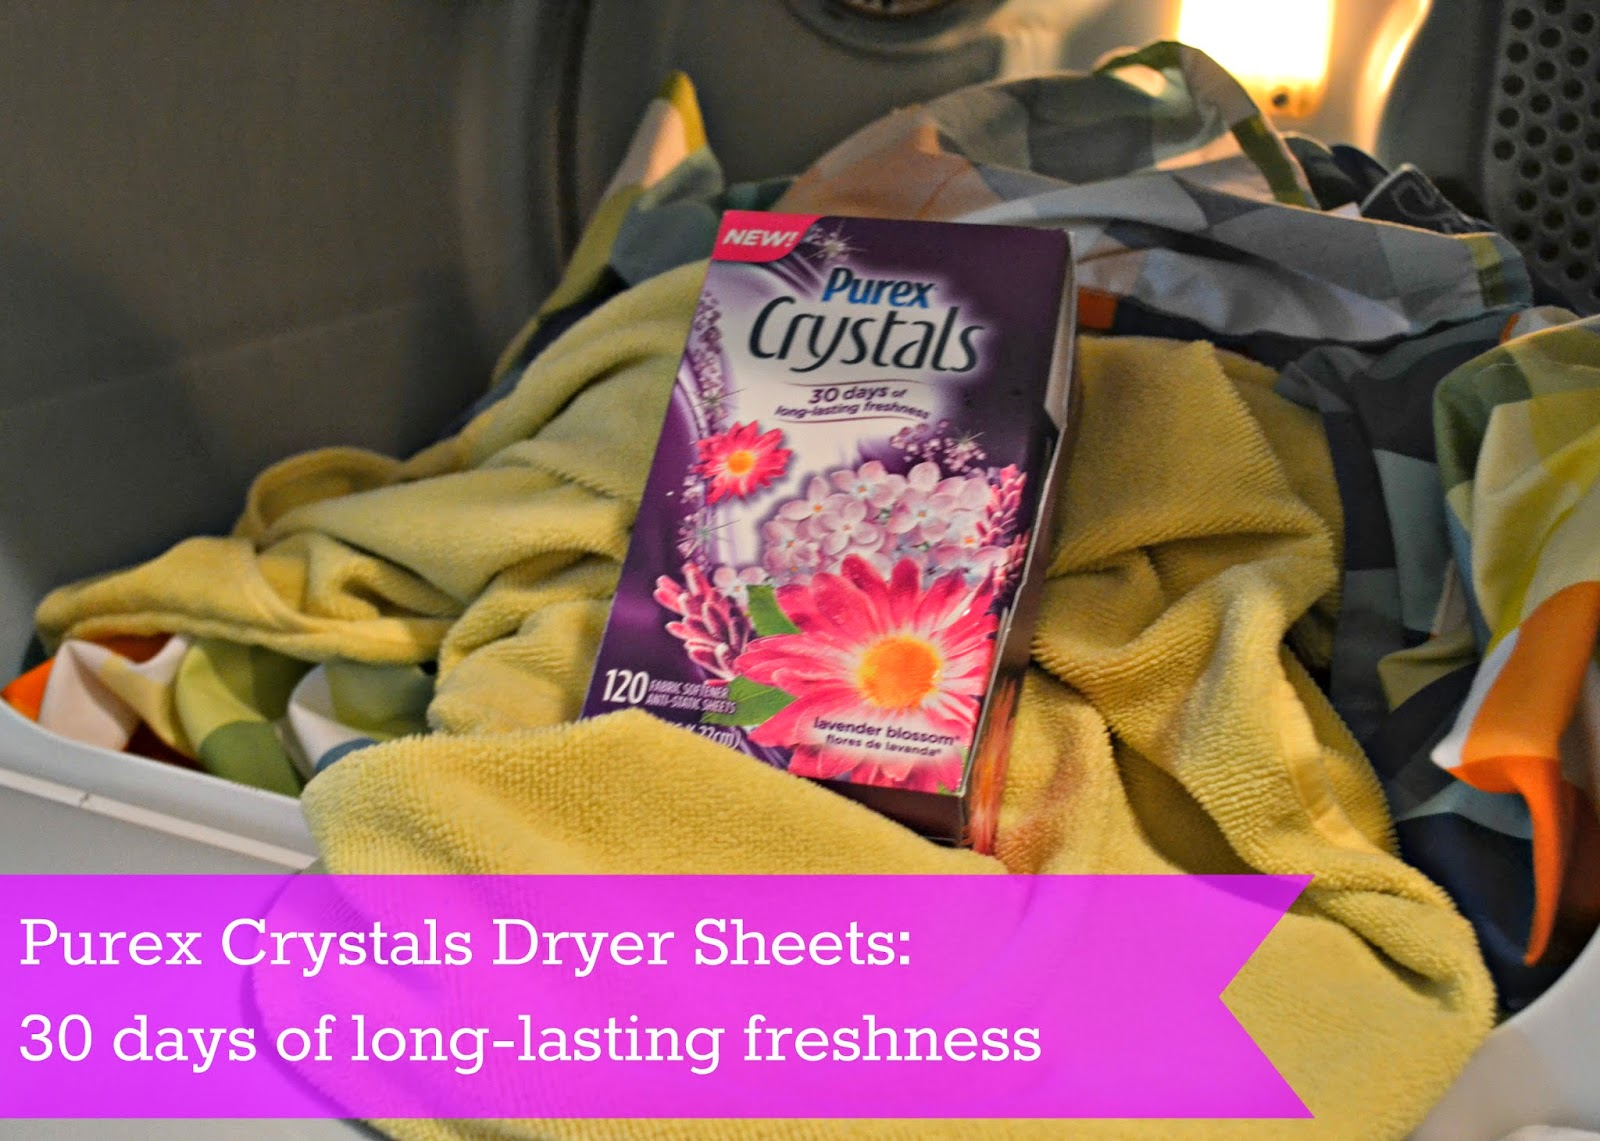 Purex Crystals Dryer Sheets {Review and #Giveaway}